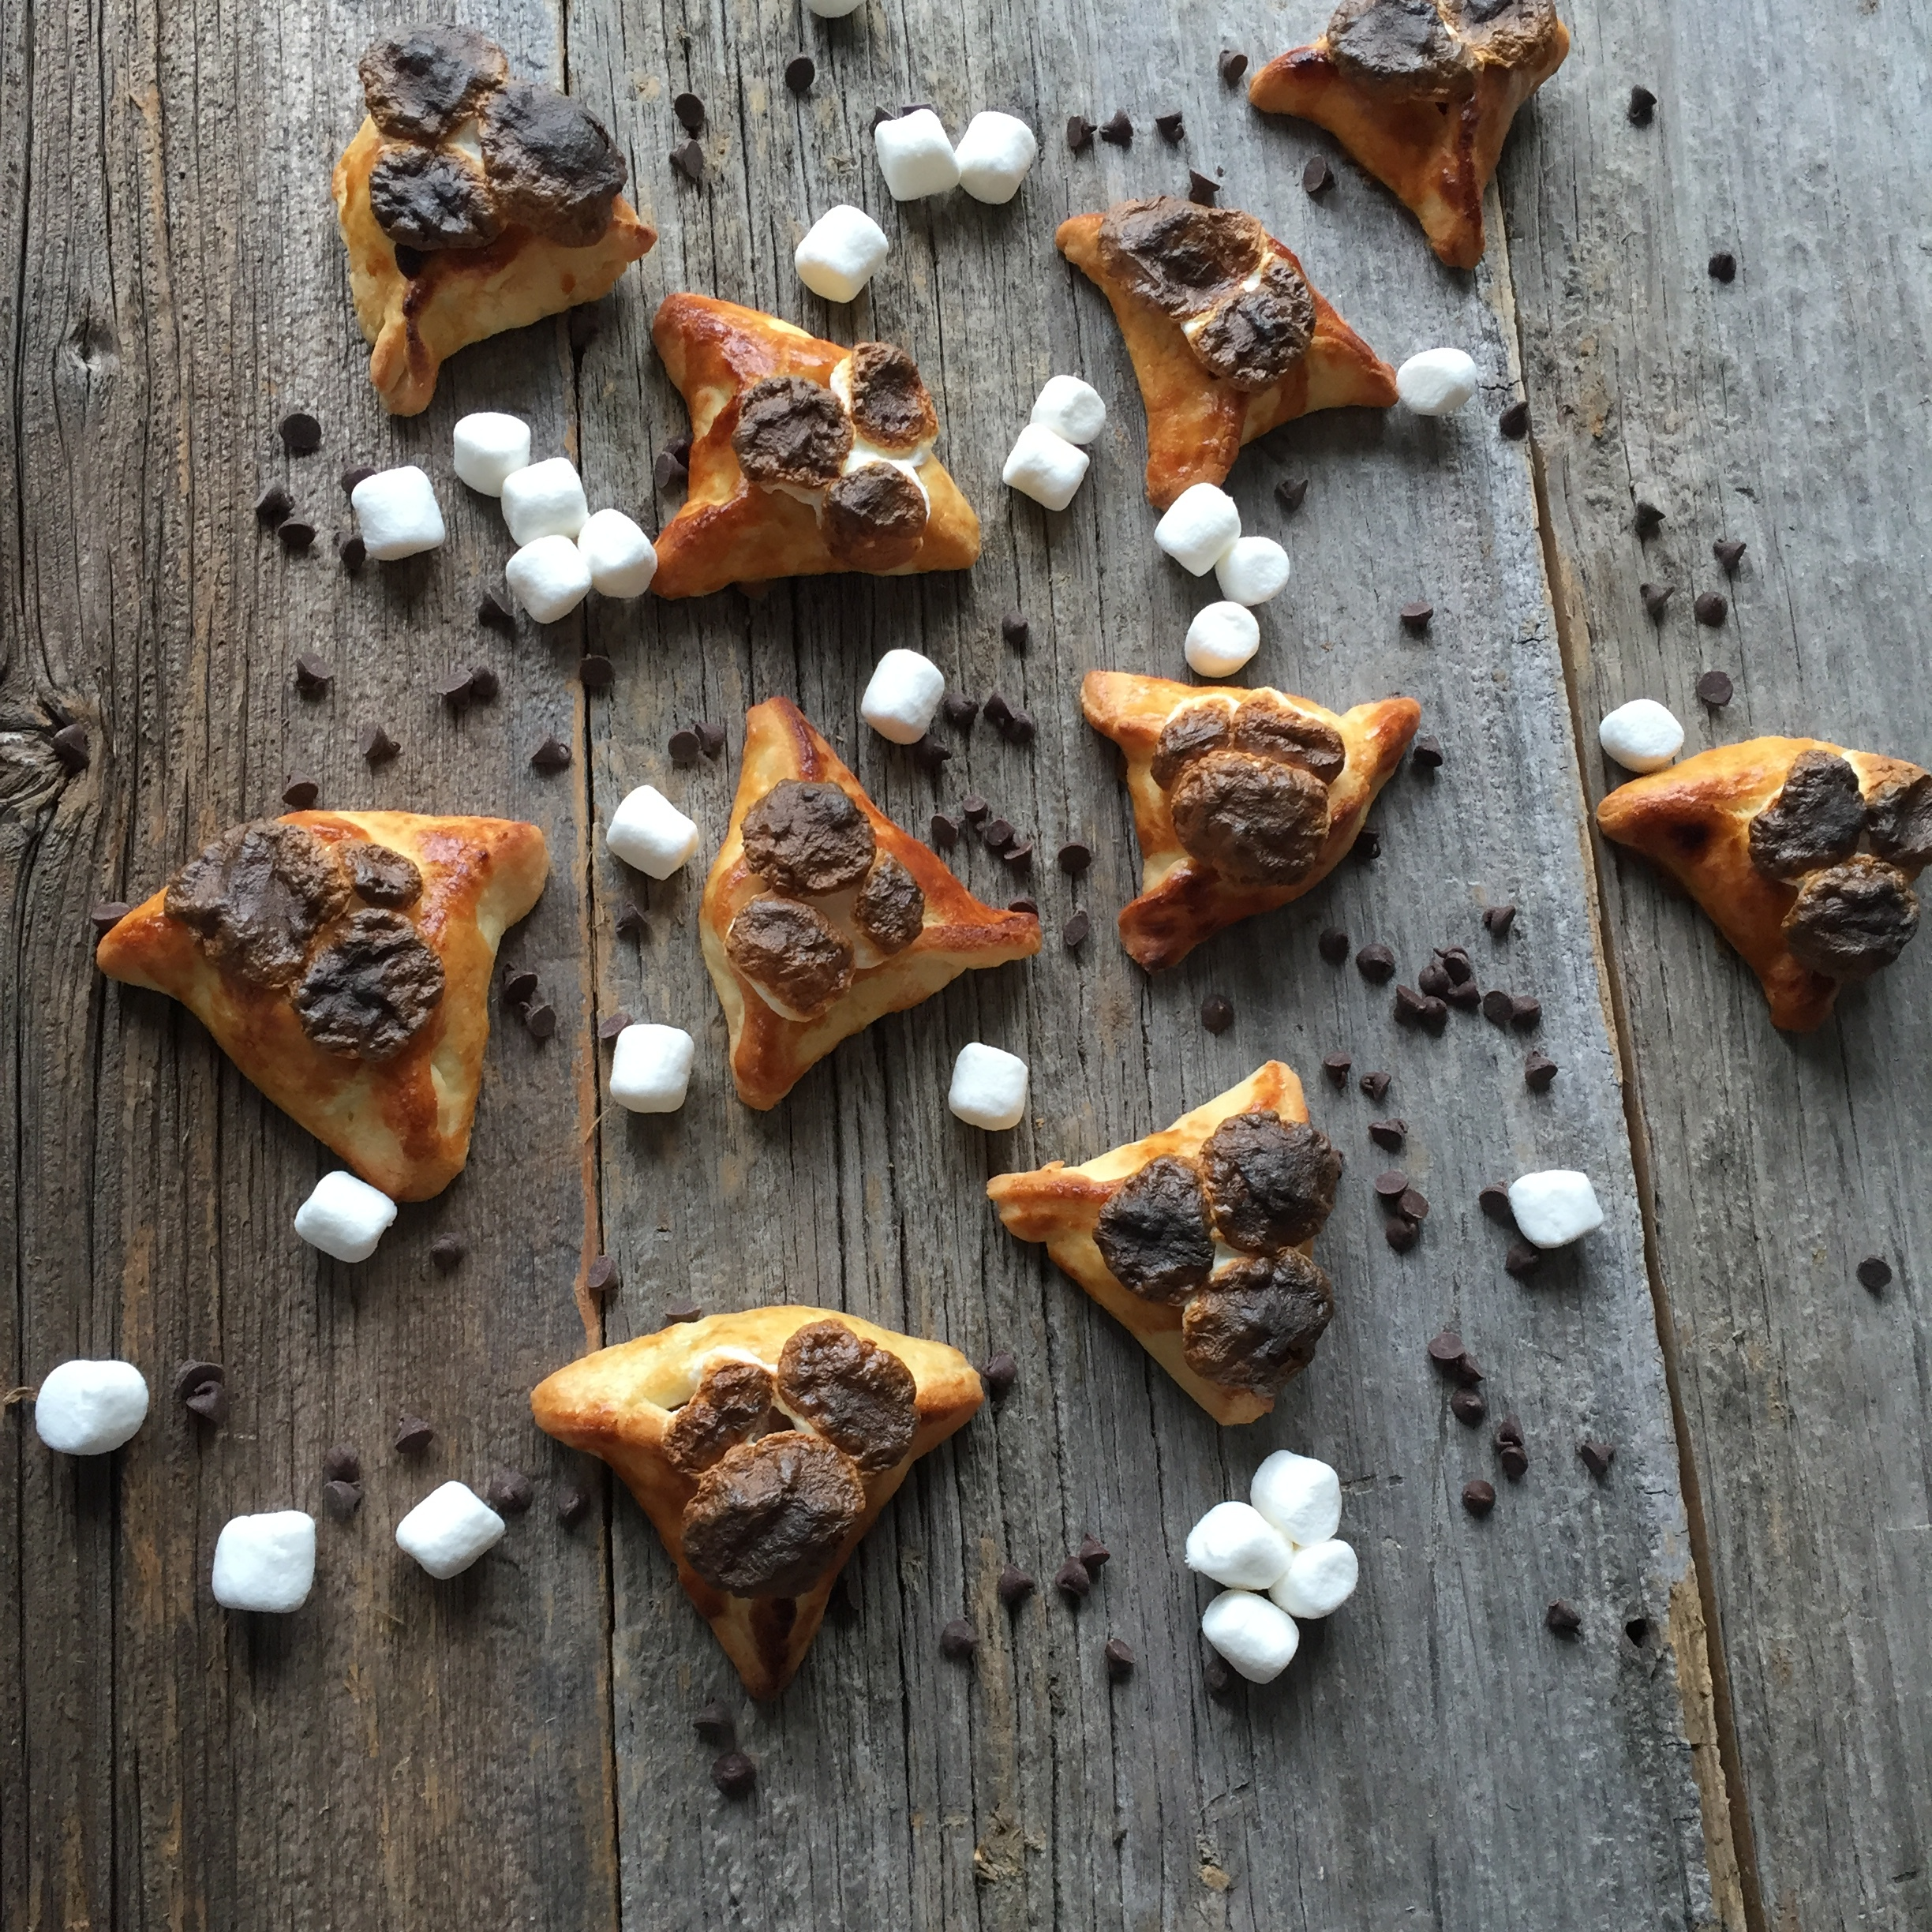 Smores Hamantaschen. Look at those burnt marshmallows!